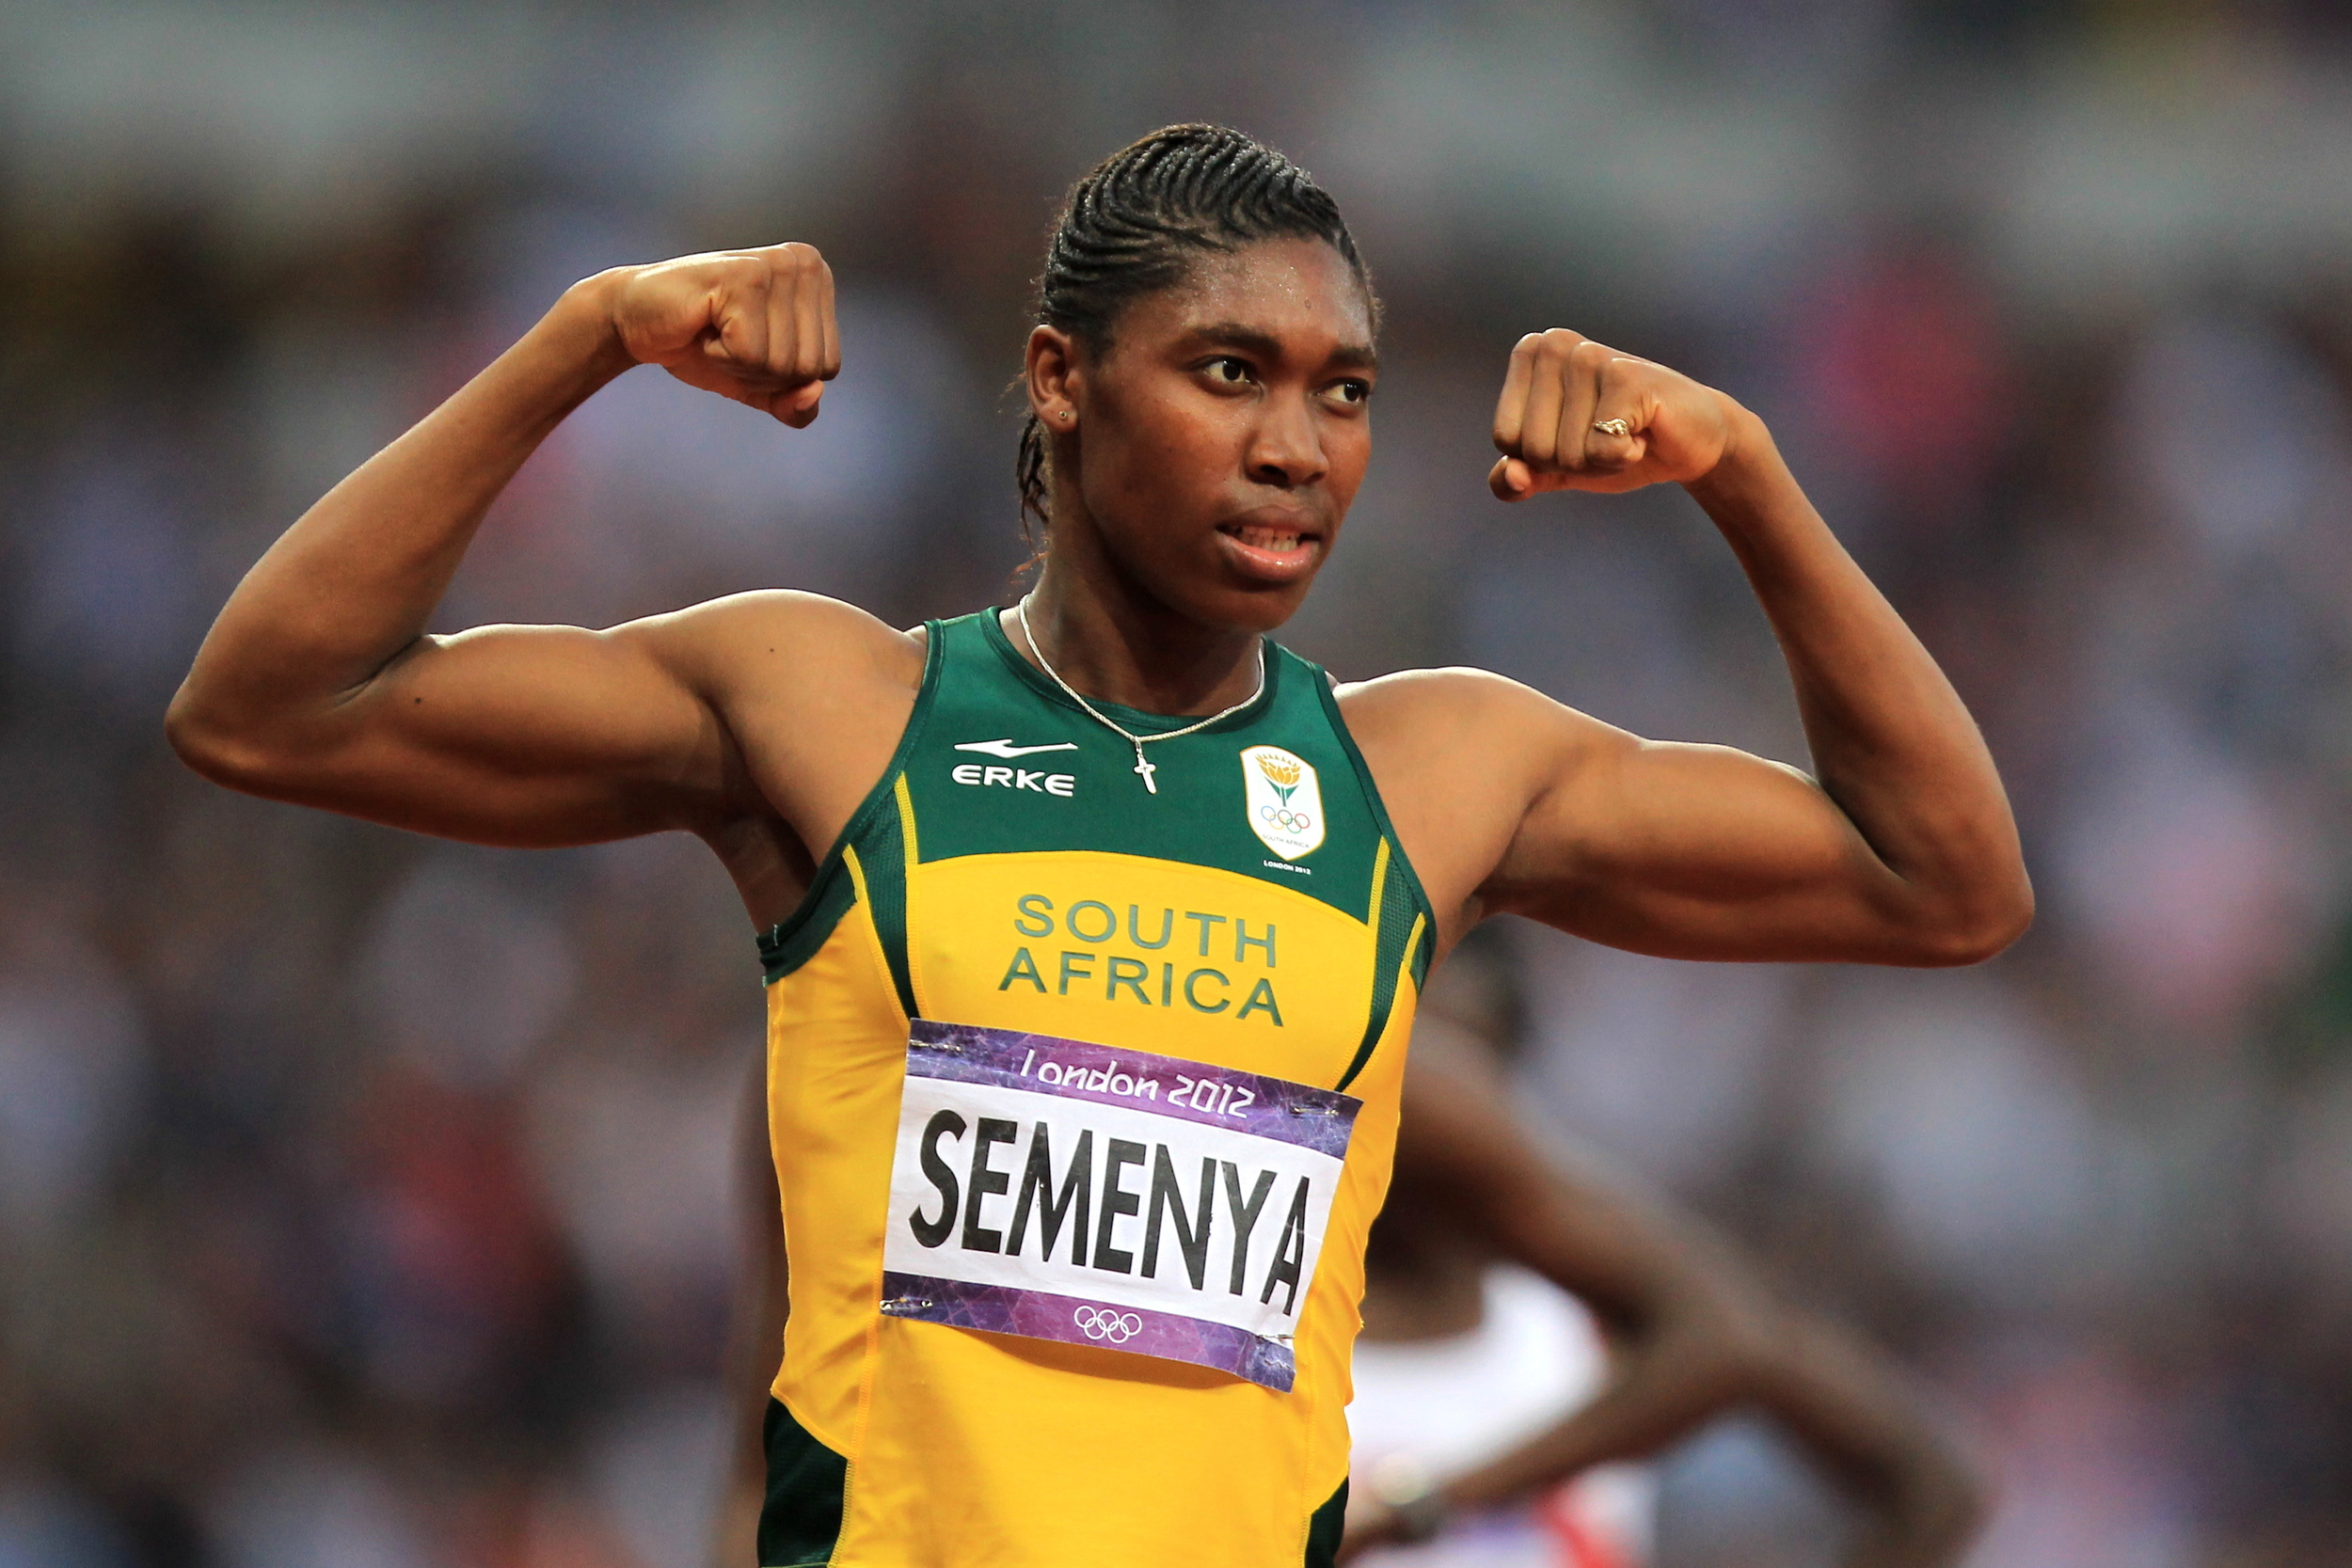 Caster Semenya celebrates winning silver in the women's 800m final at the London 2012 Games. Four years ago, Semenya was forced to race while adhering to an upper limit on her testosterone levels. This year, she will run unimpeded. Image supplied by Action Images / James O'Brien